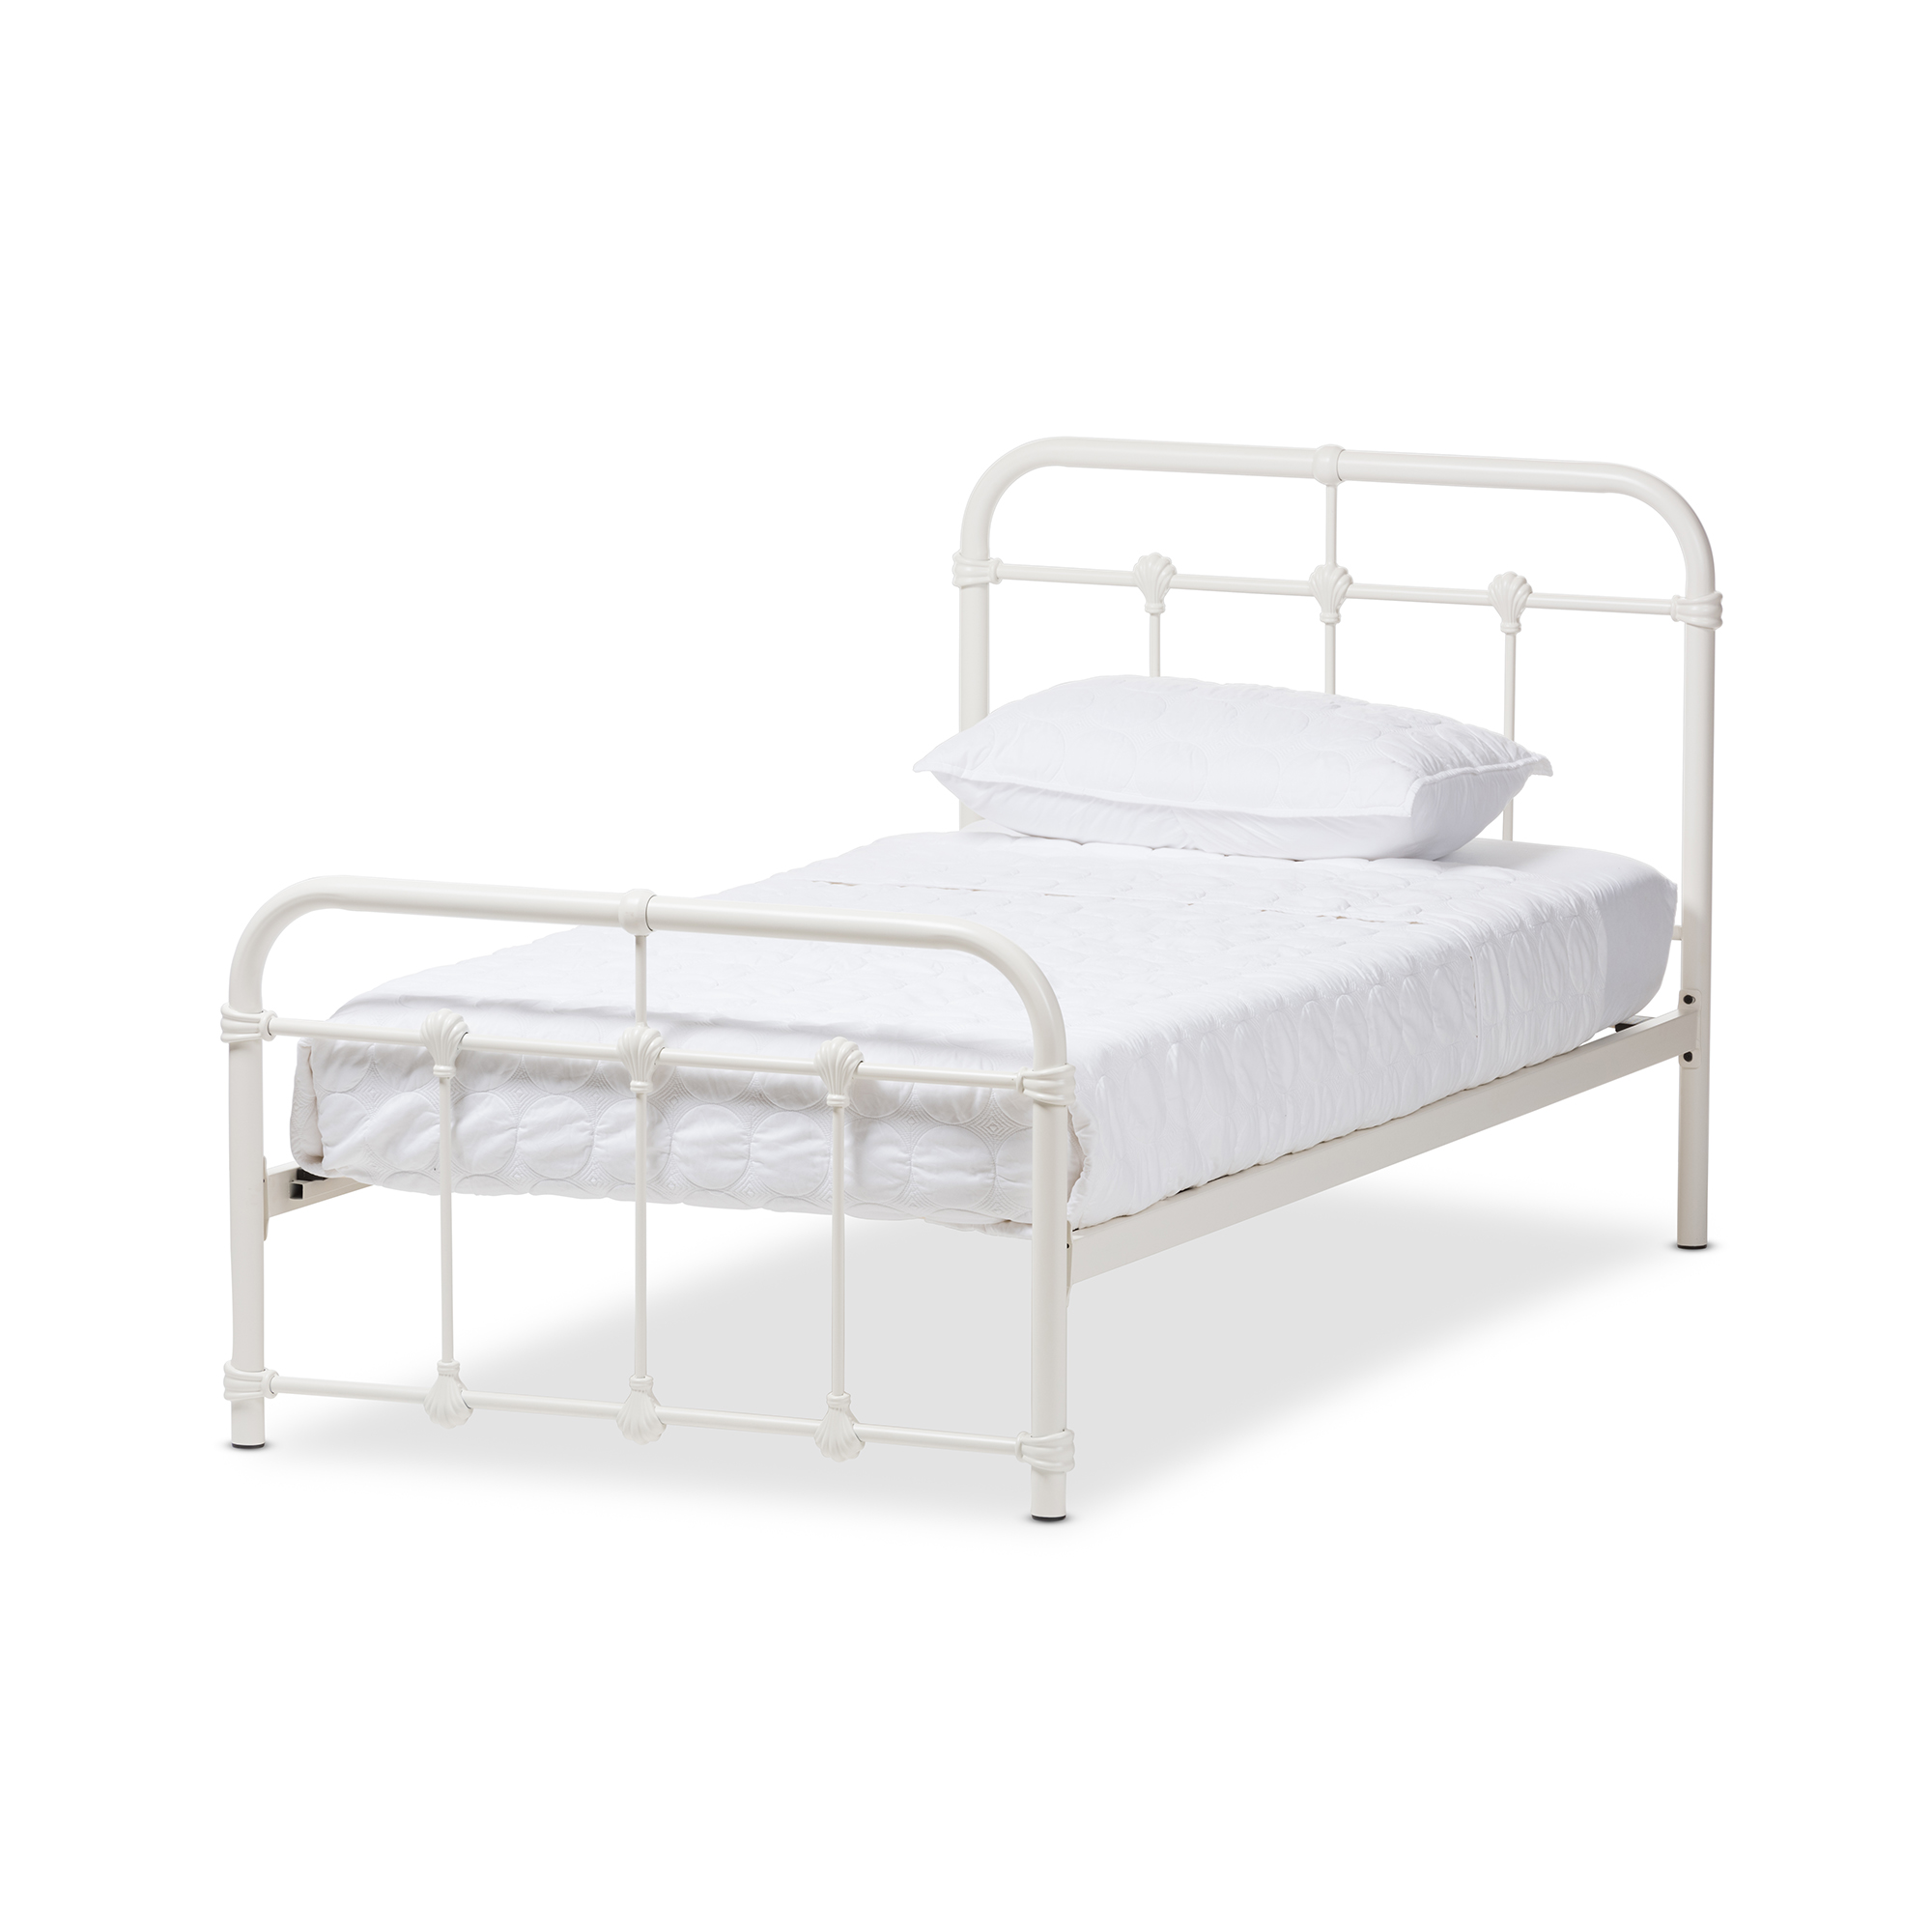 baxton studio mandy industrial style antique white twin size metal platform bed affordable modern furniture in